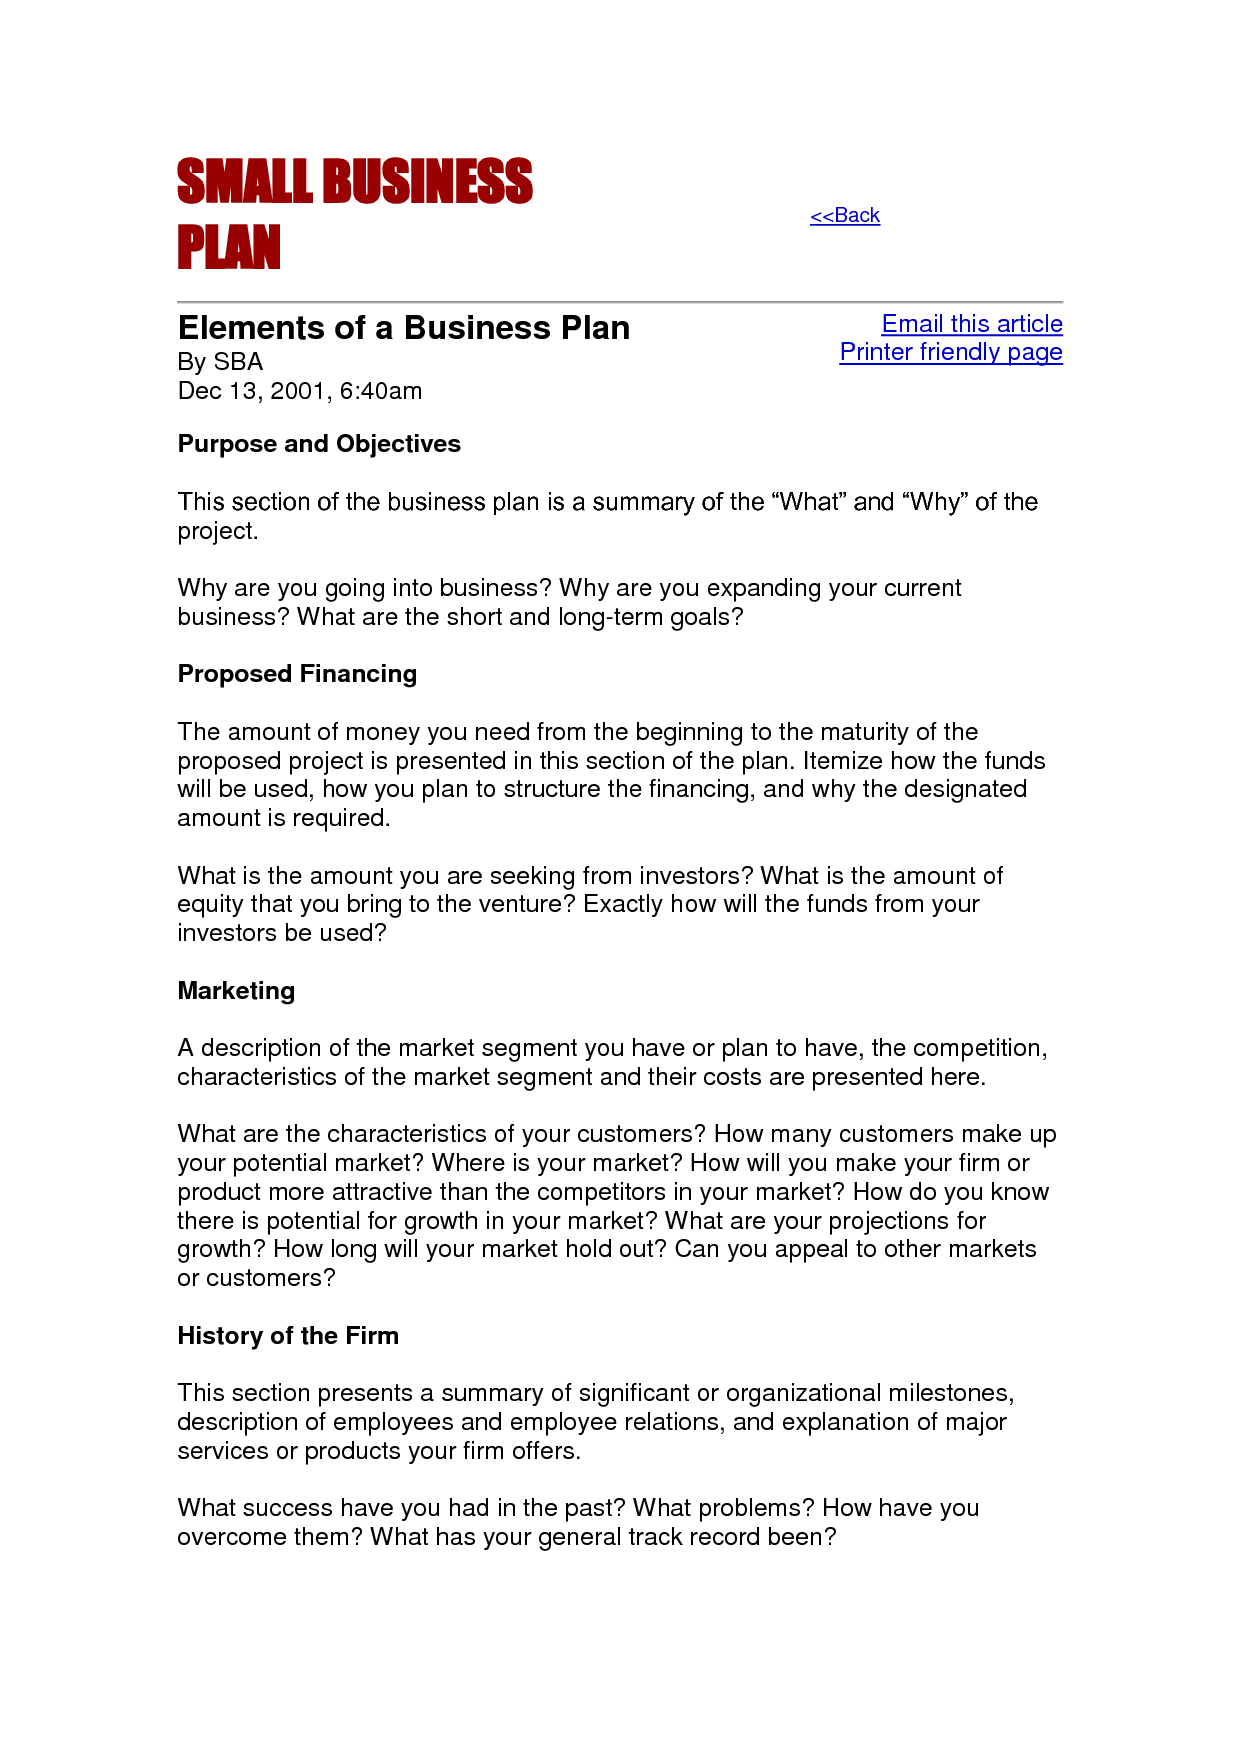 Small business proposal template building a stronger small small business proposal template building a stronger small business community at topgovernmentgrantssbdcp wajeb Choice Image